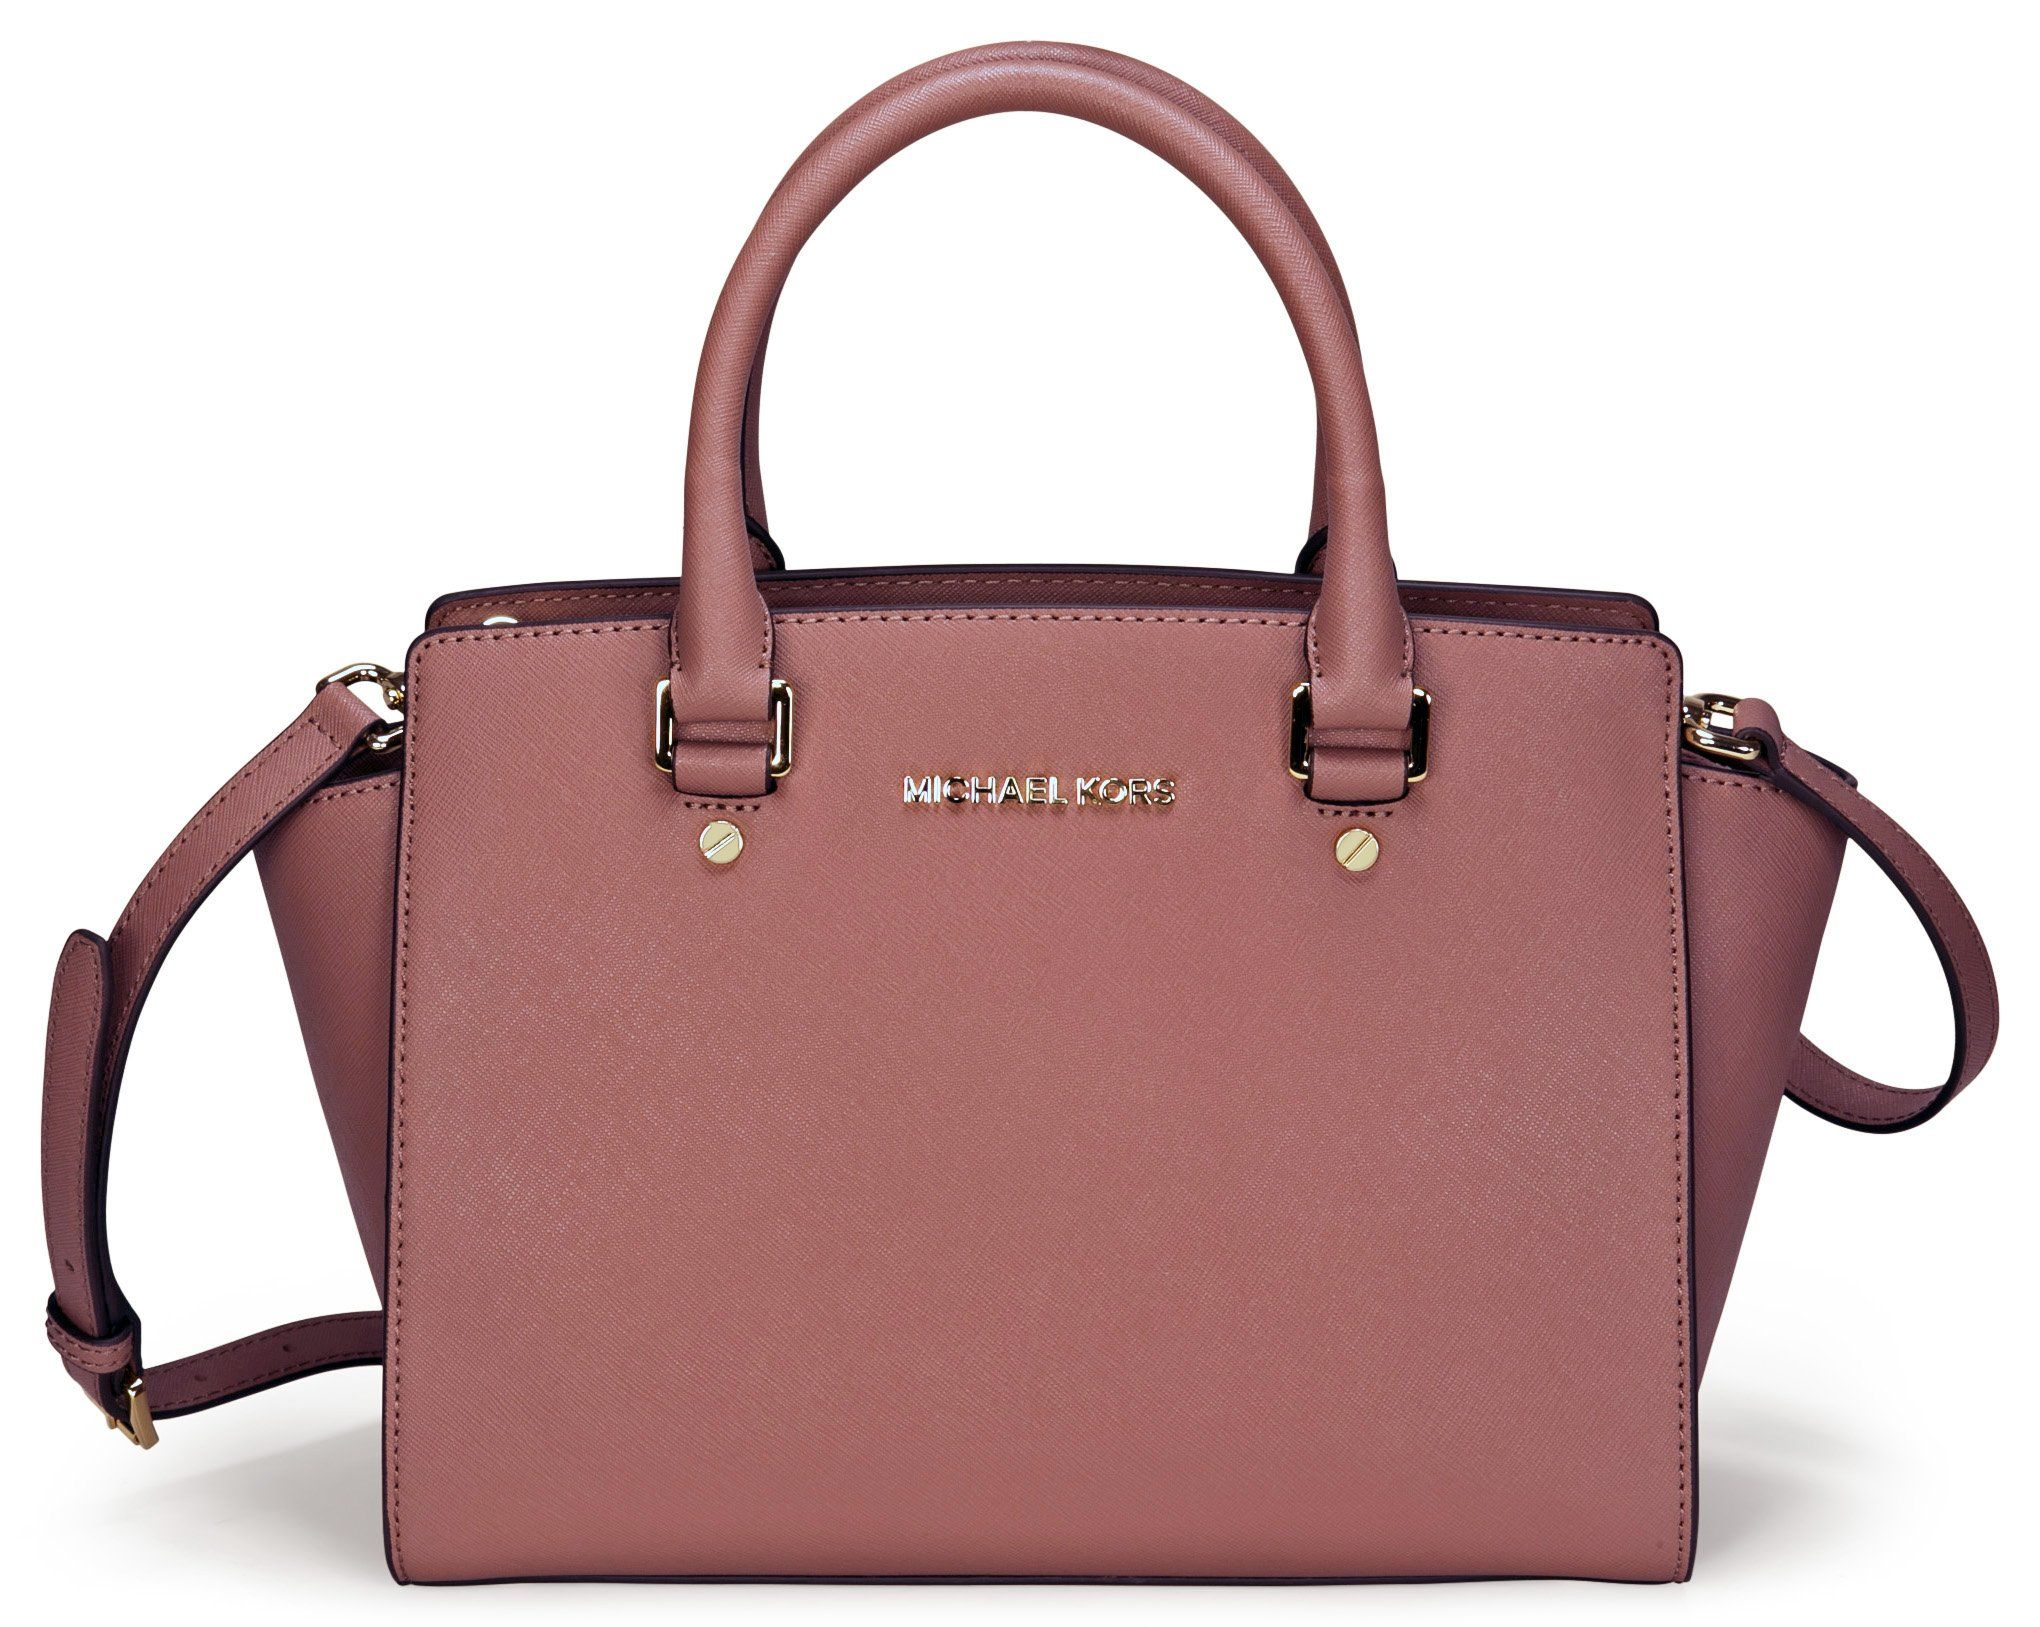 Michael Kors Selma Dusty Rose Medium Satchel Leather Handbag ...